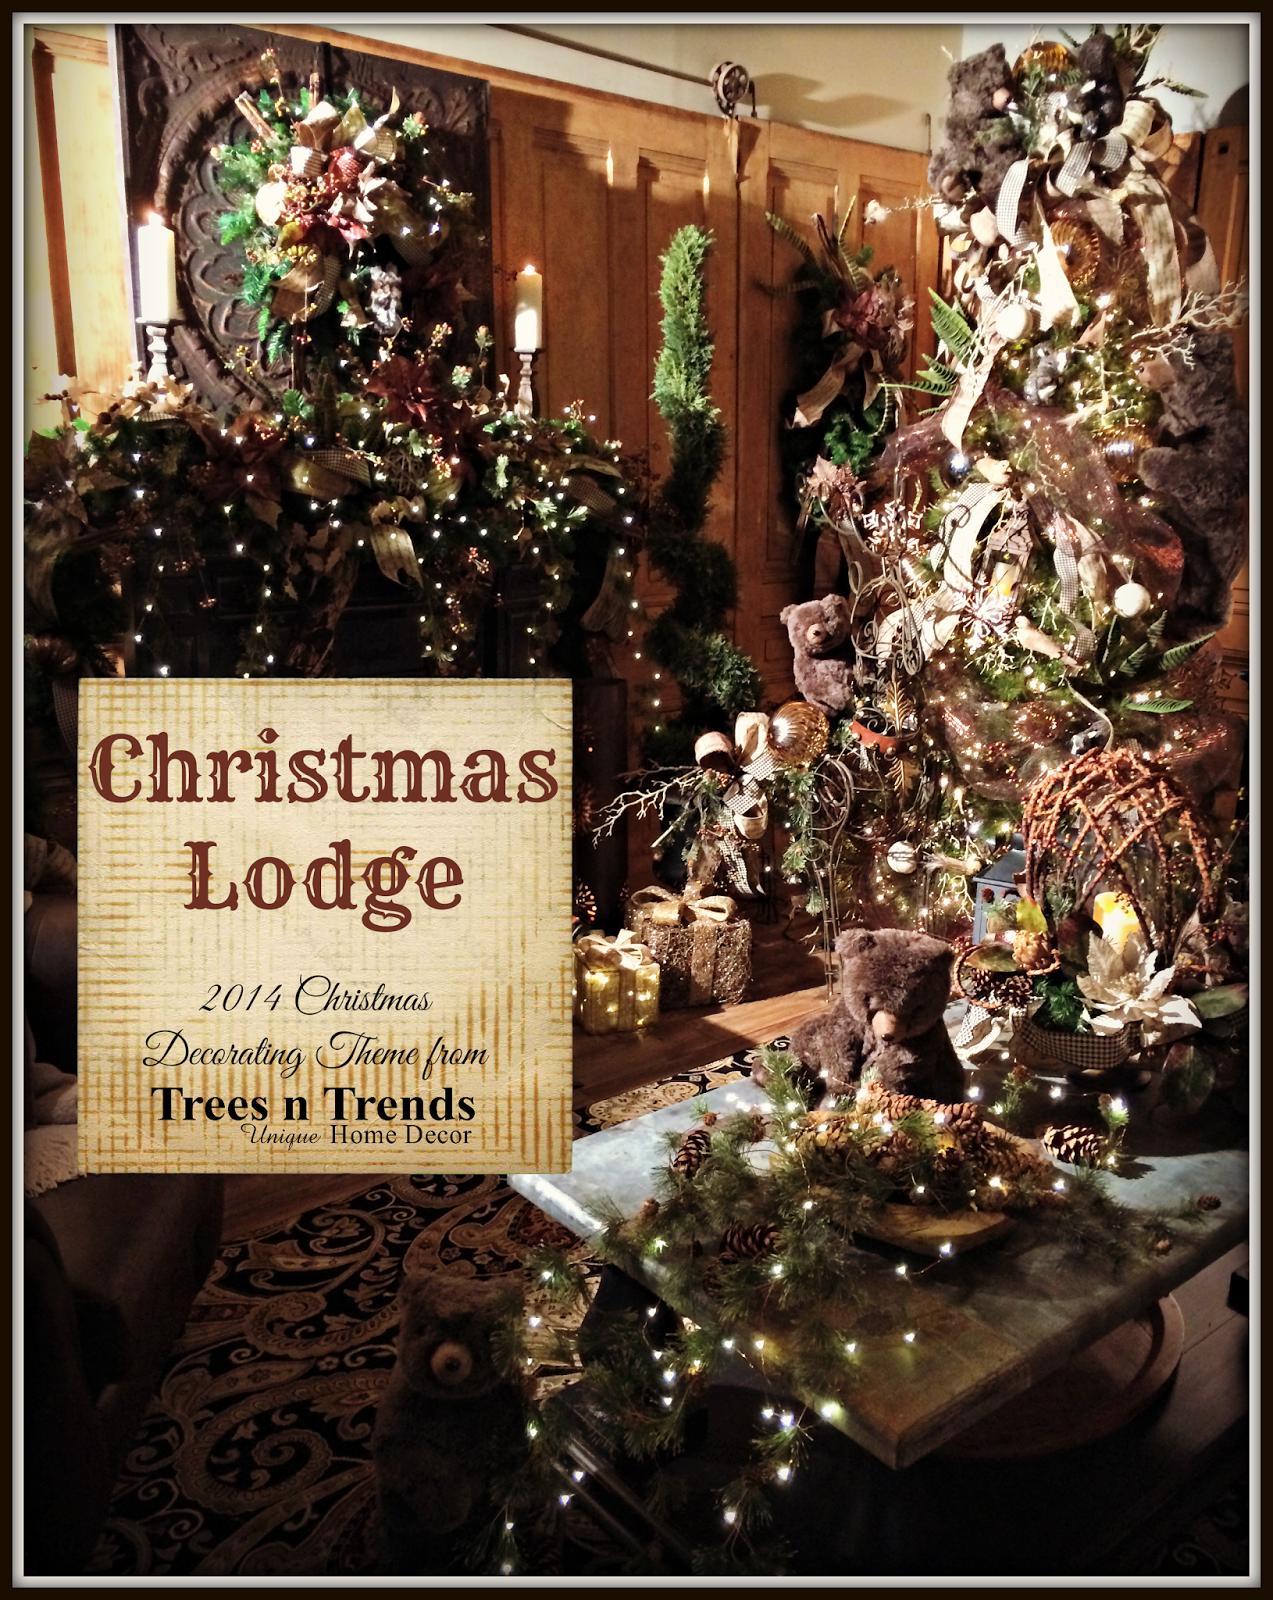 trees n trends christmas decor read more details by clicking on the image